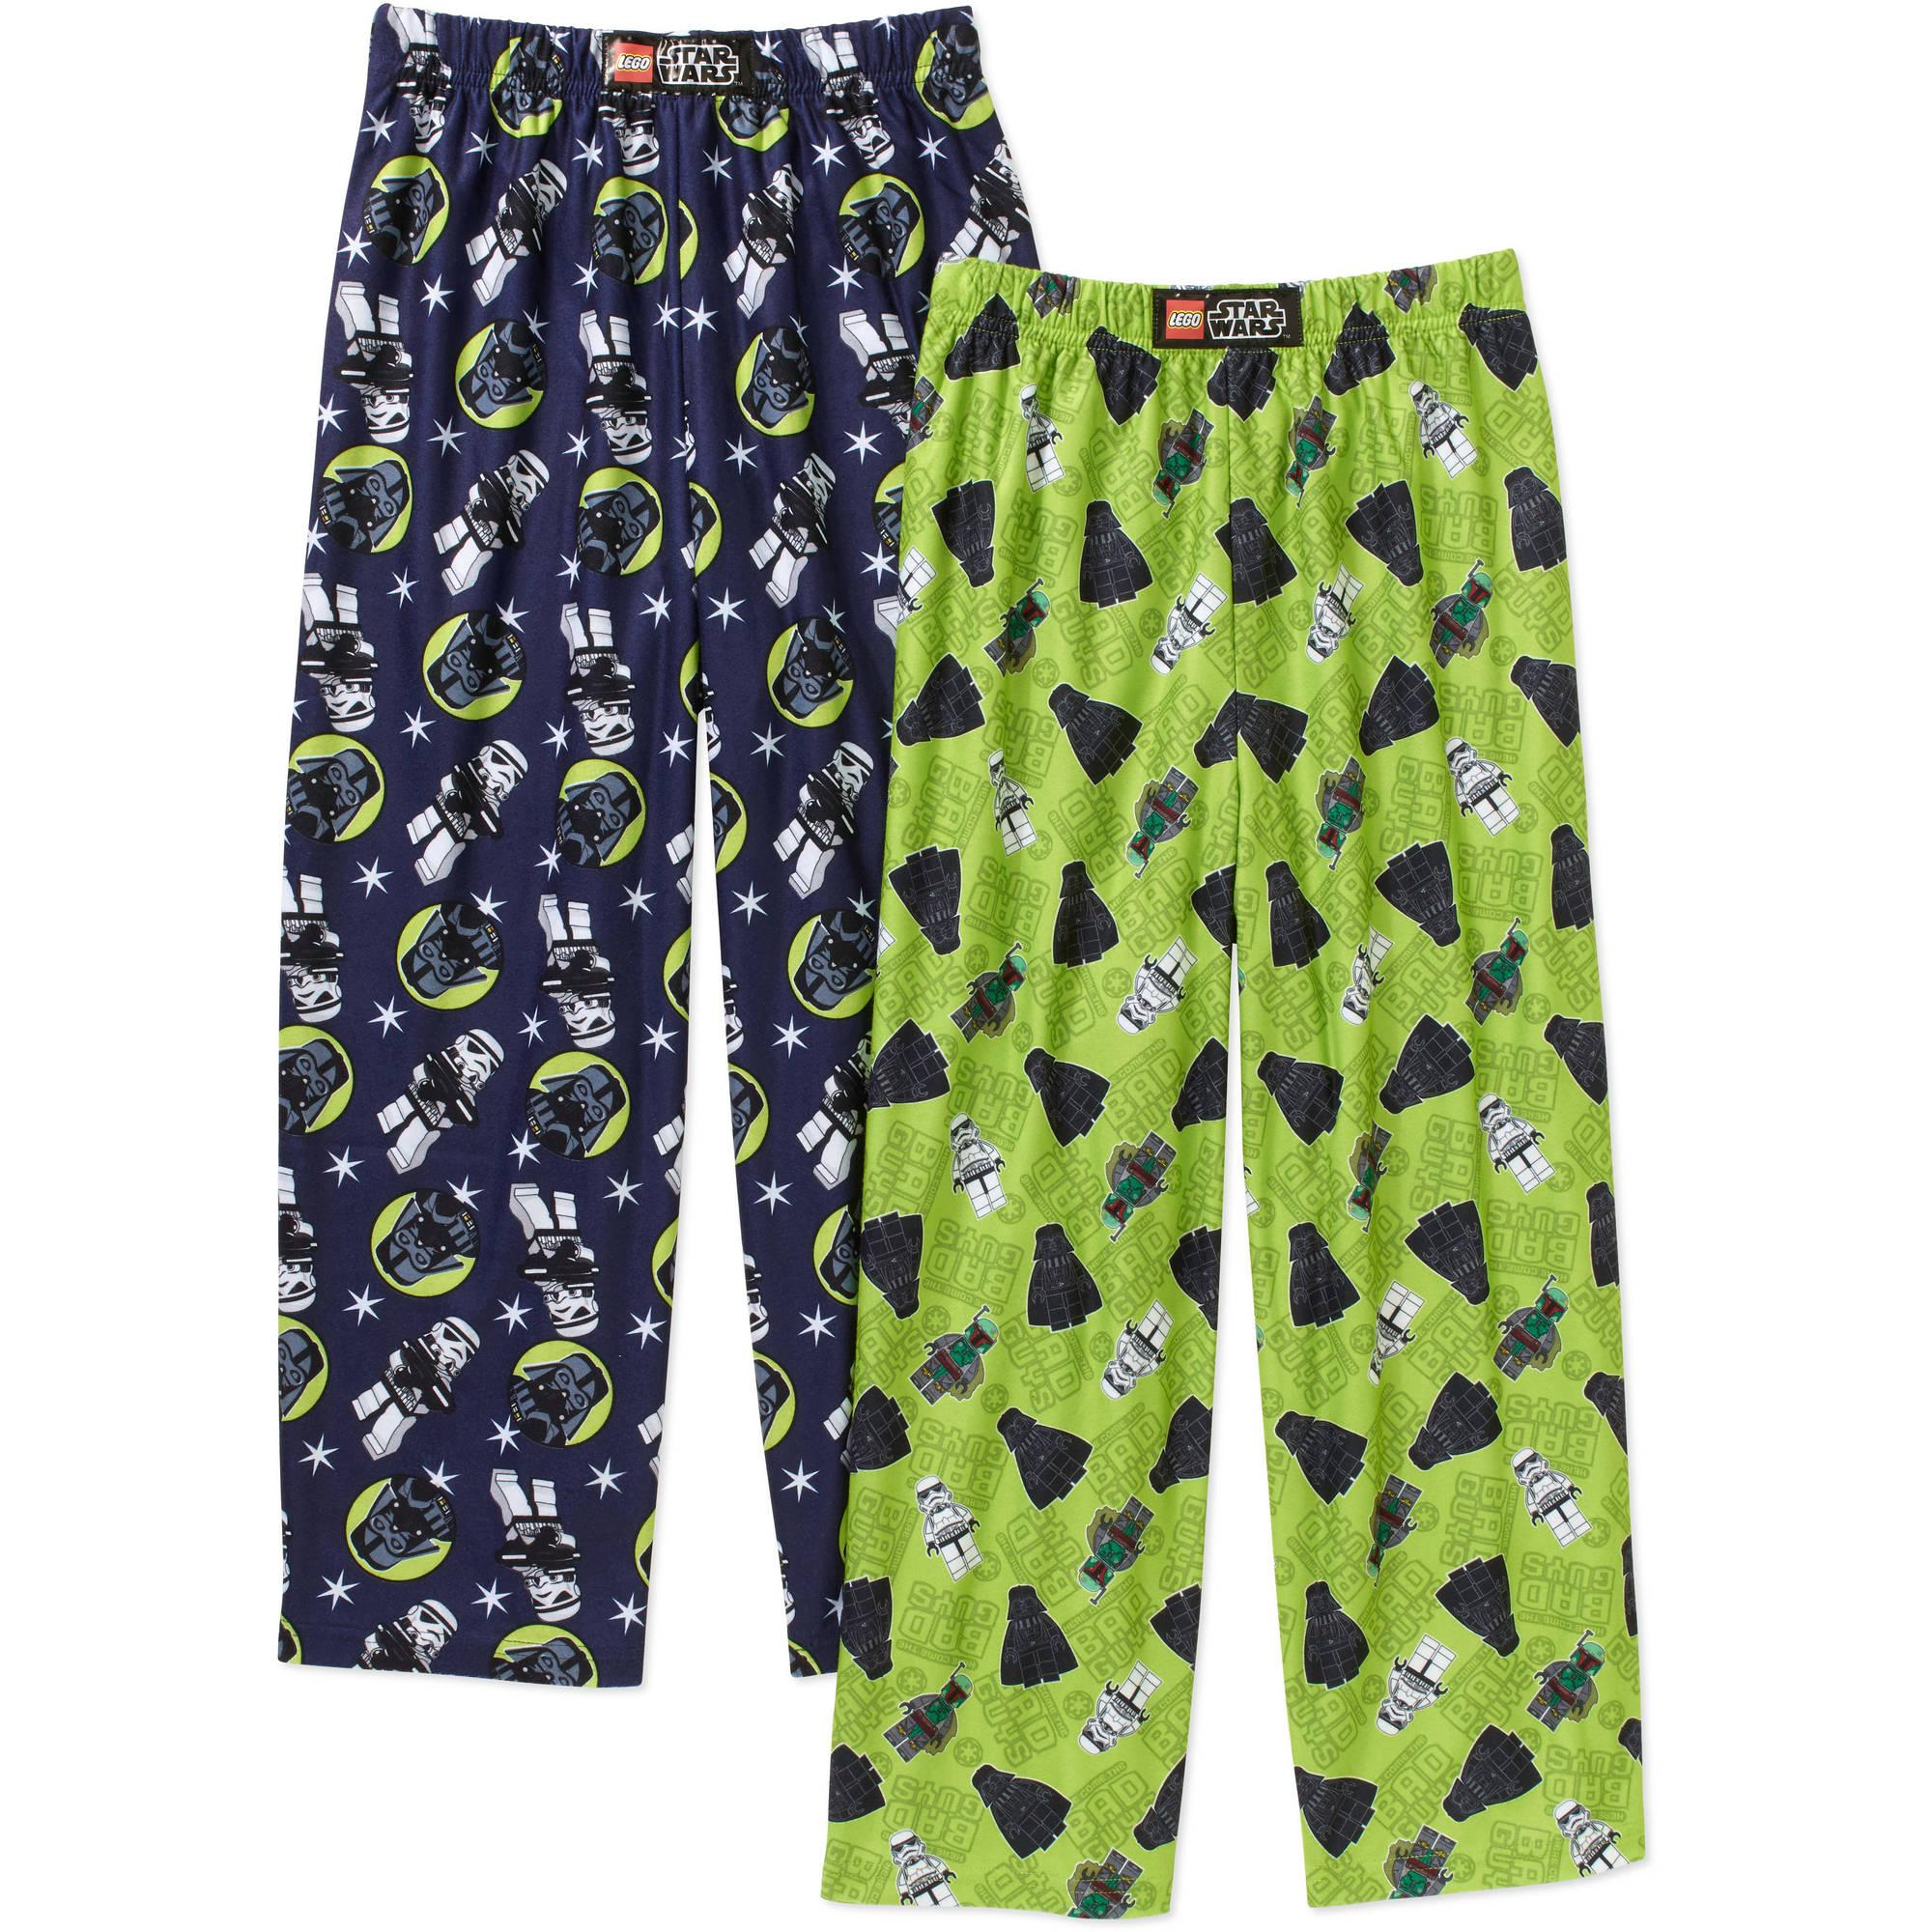 Multipurpose Lego Star Wars Licensed Sleep Pack Lego Star Wars Licensed Sleep Pack Star Wars Pajamas Target Star Wars Pajamas Womens Target baby Star Wars Pajamas